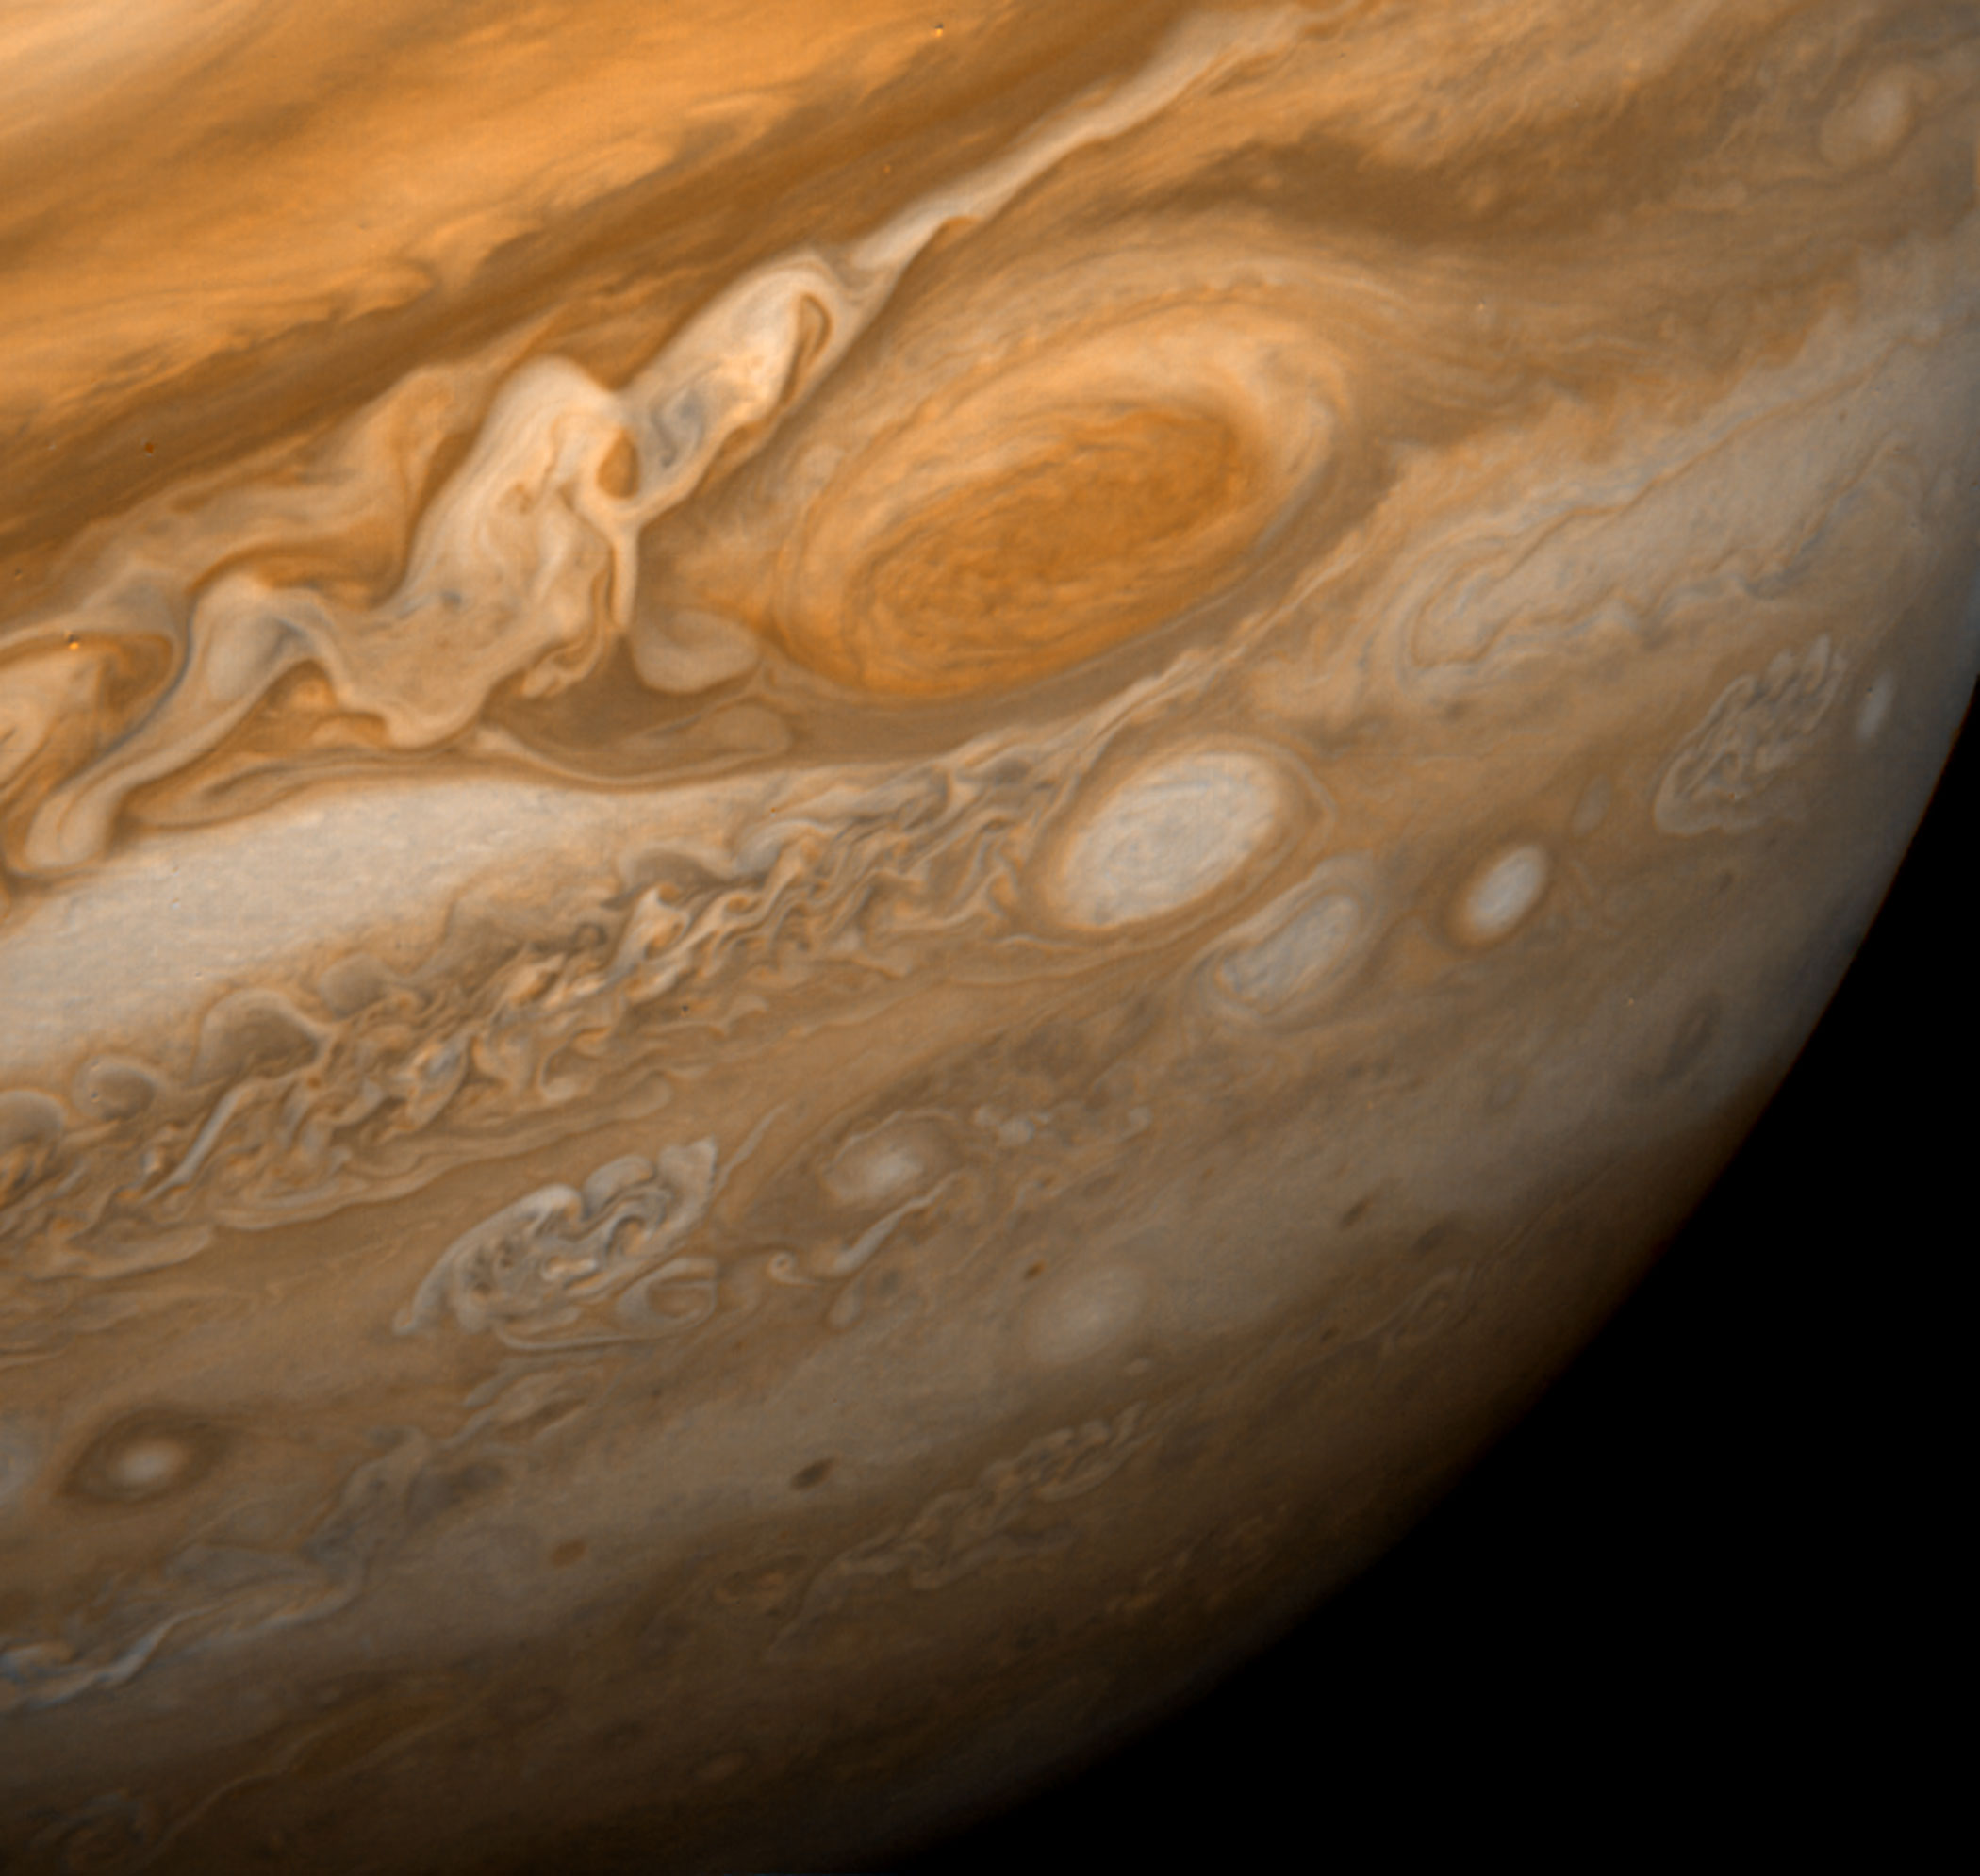 <b>Jupiter's Great Red Spot, 1979</b>; This dramatic view of Jupiter's Great Red Spot and its surroundings was obtained by Voyager 1 on Feb. 25, 1979.